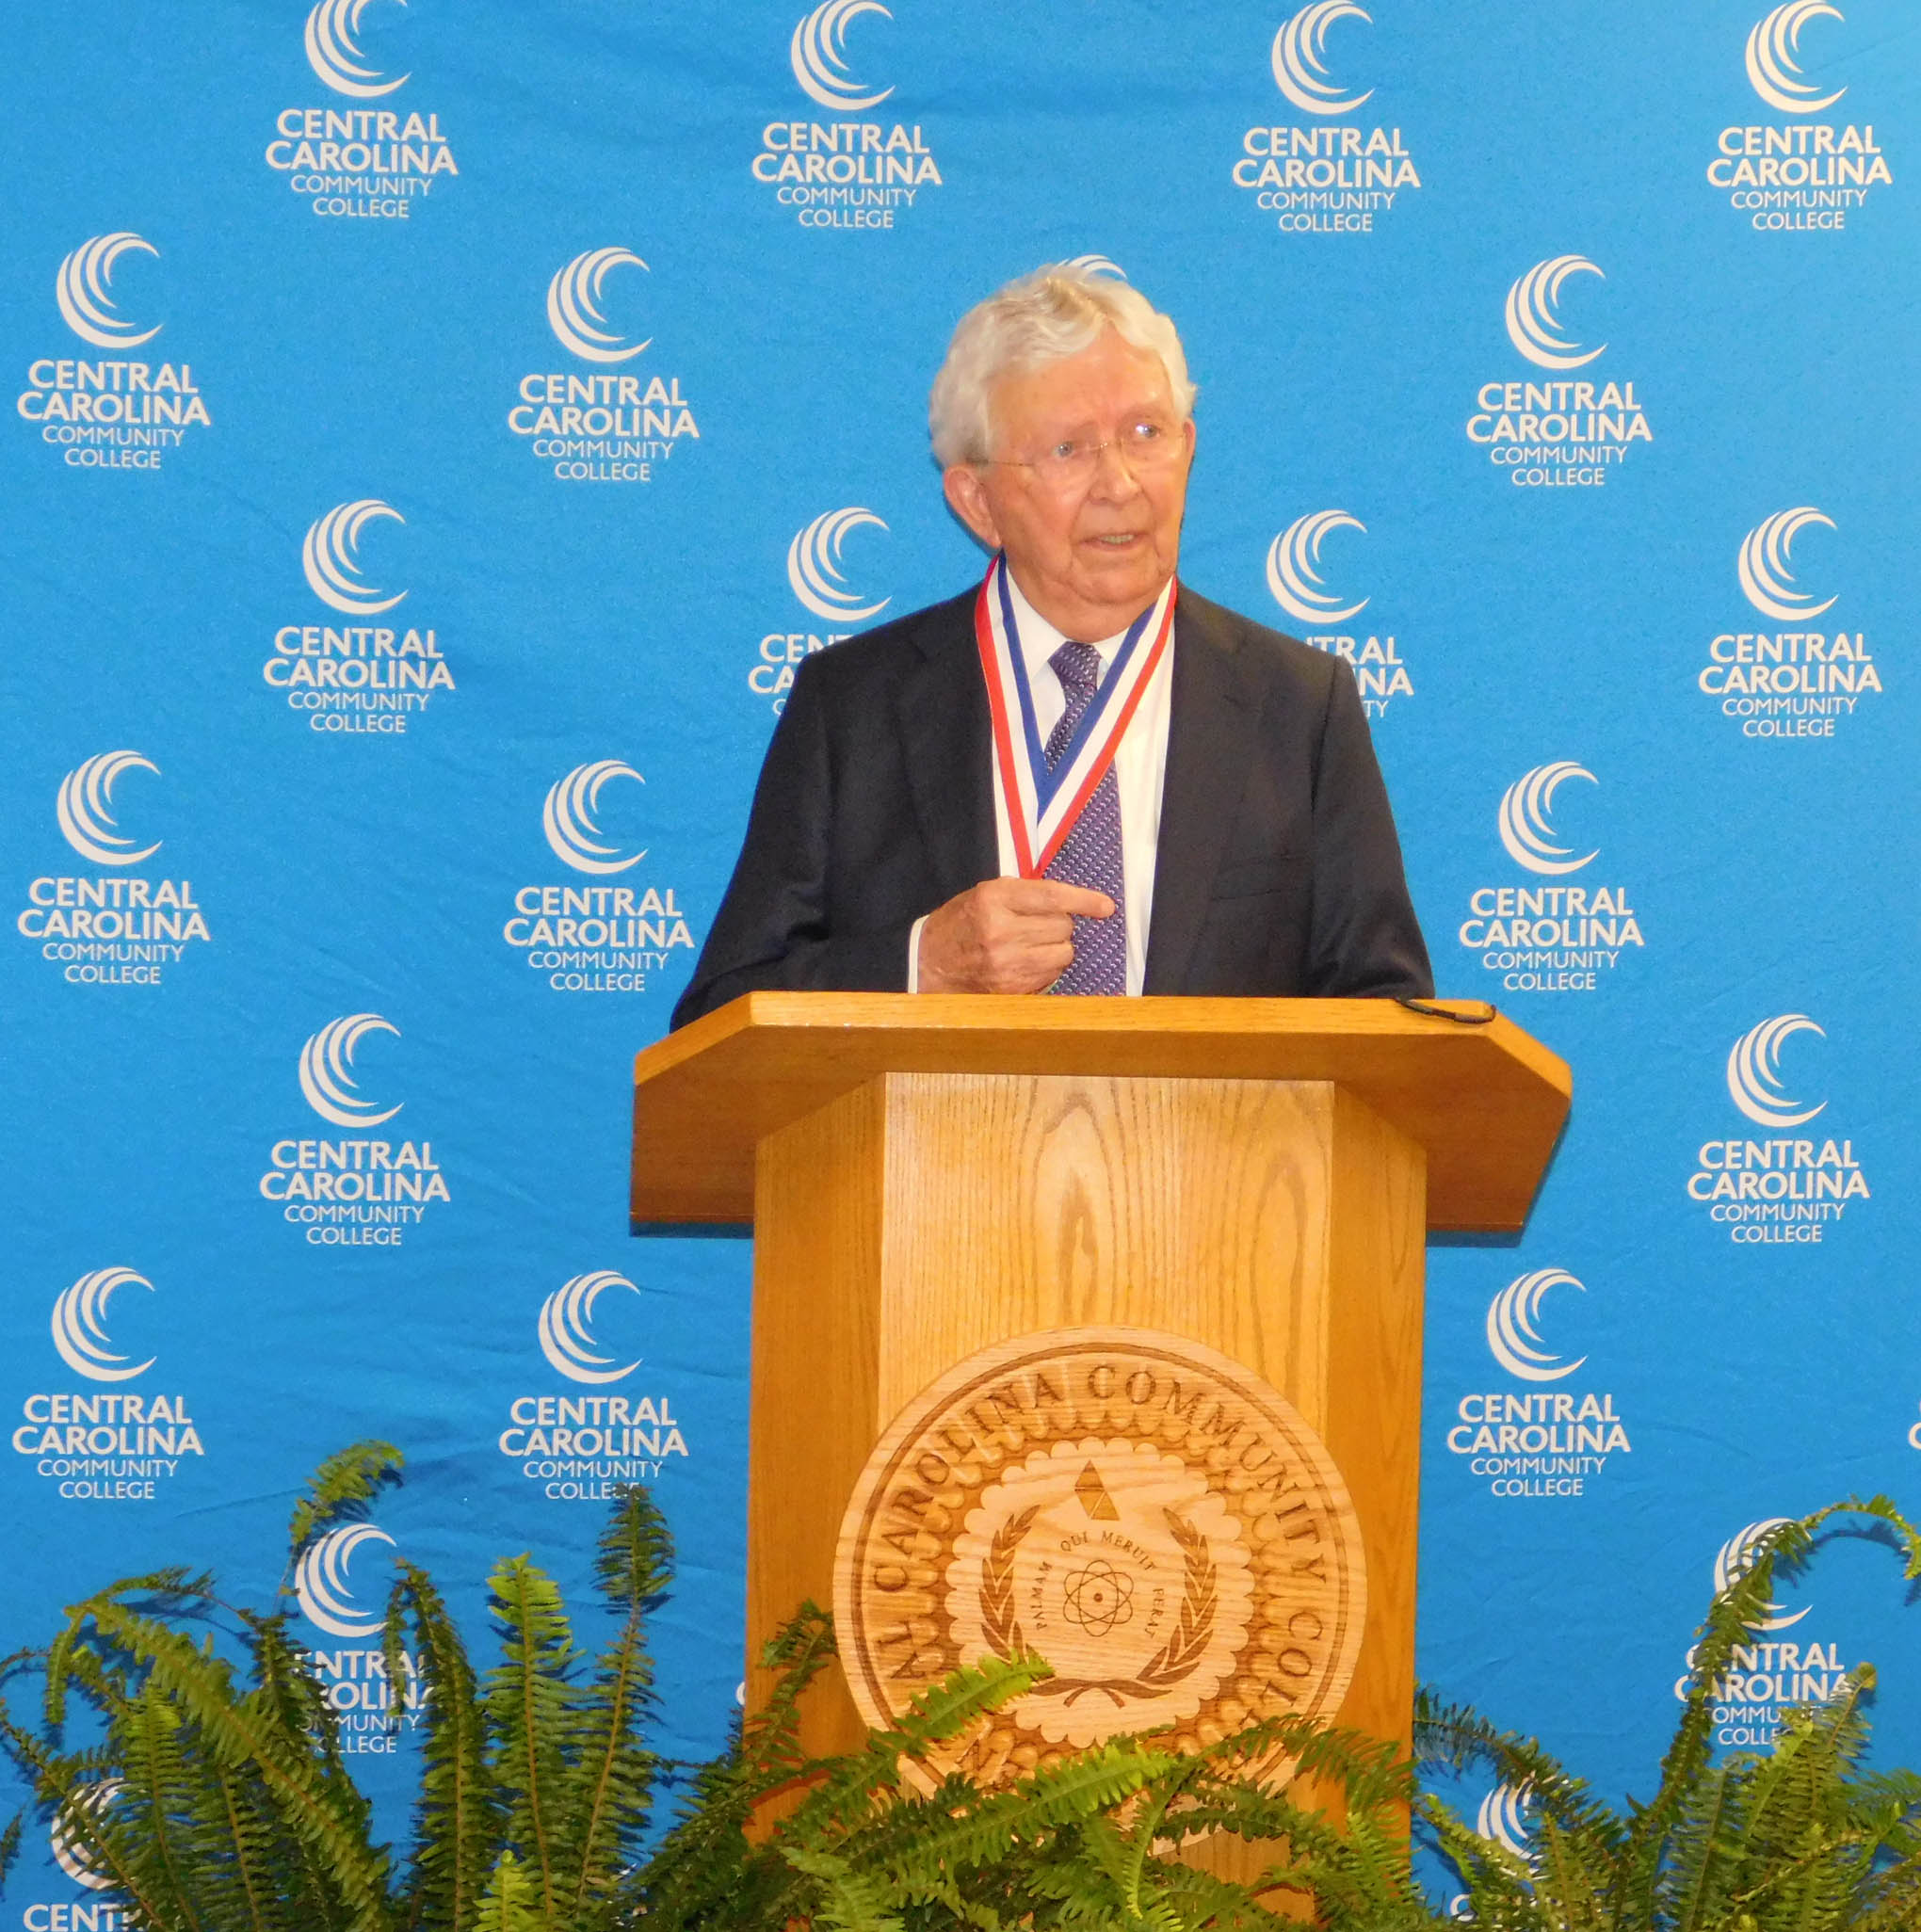 Click to enlarge,  Dr. J.F. Hockaday, president of Central Carolina Community College from 1969 to 1983, has been recognized as the latest recipient of the I.E. Ready Award, the highest honor bestowed by the State Board of Community Colleges.